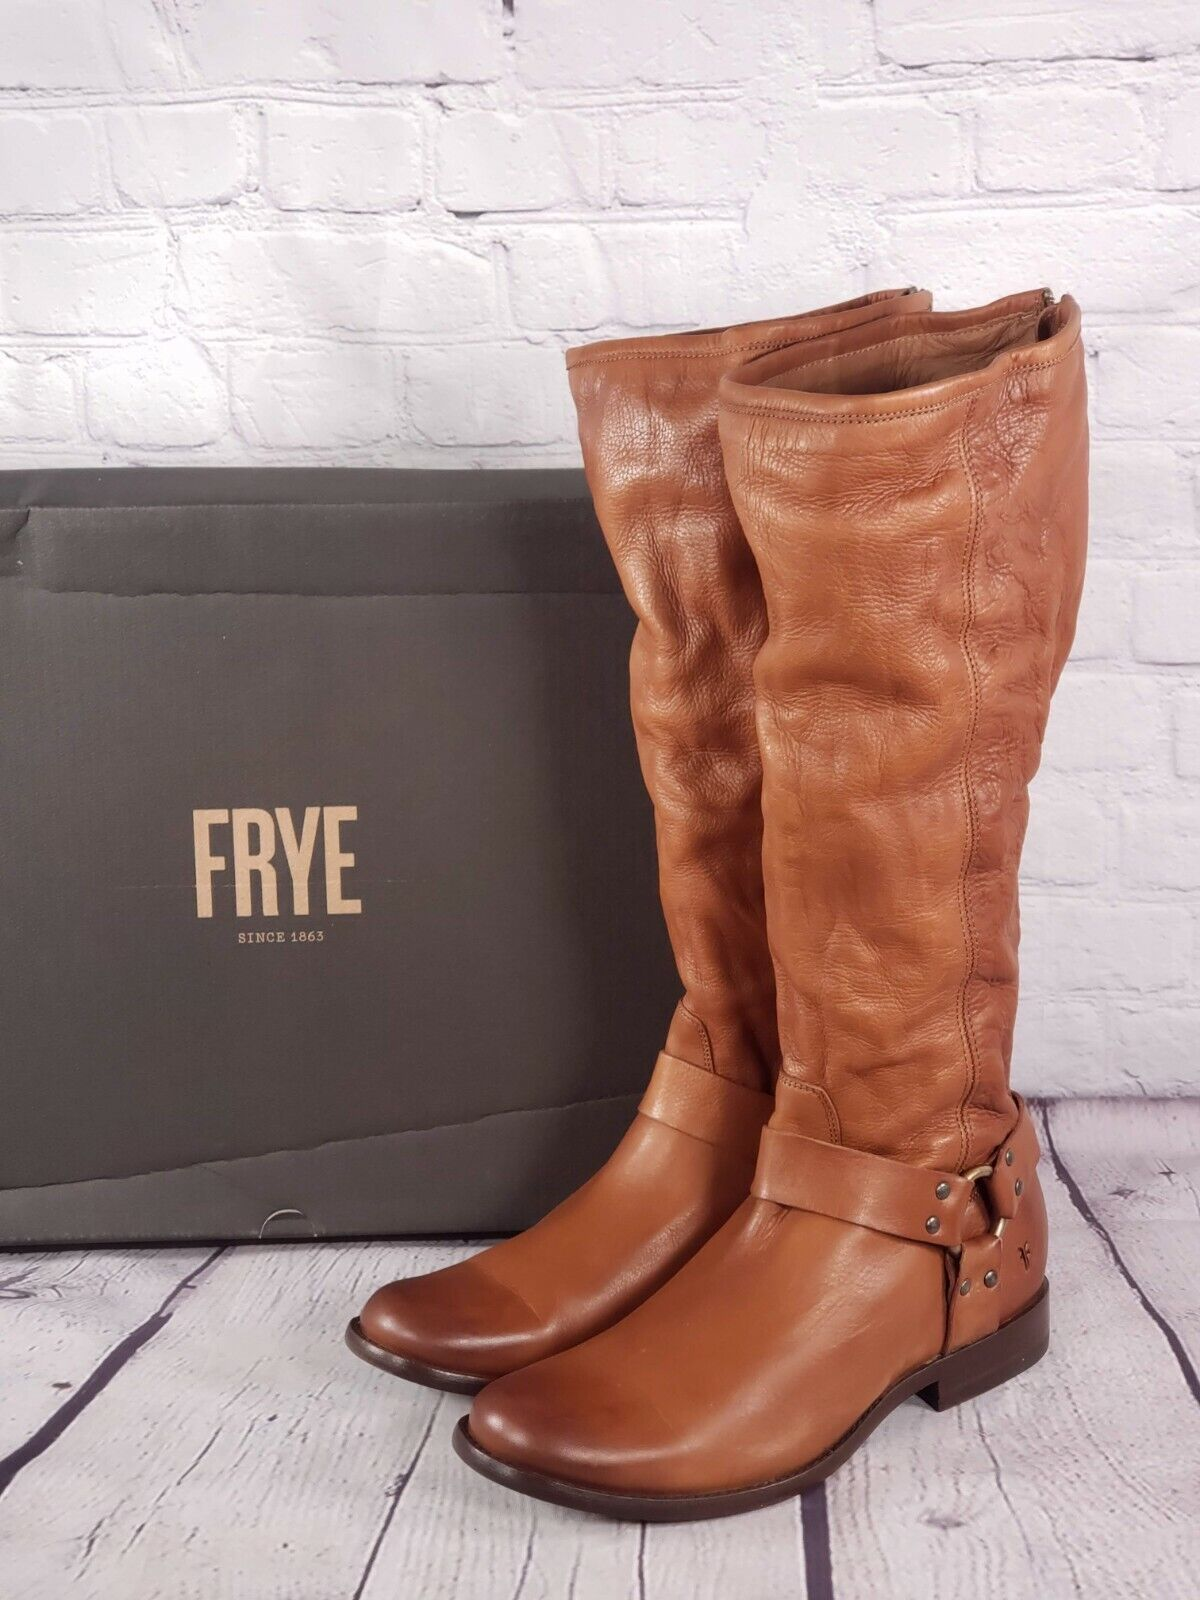 Frye - Wide Calf Leather Tall Shaft Boots - Phillip Harness